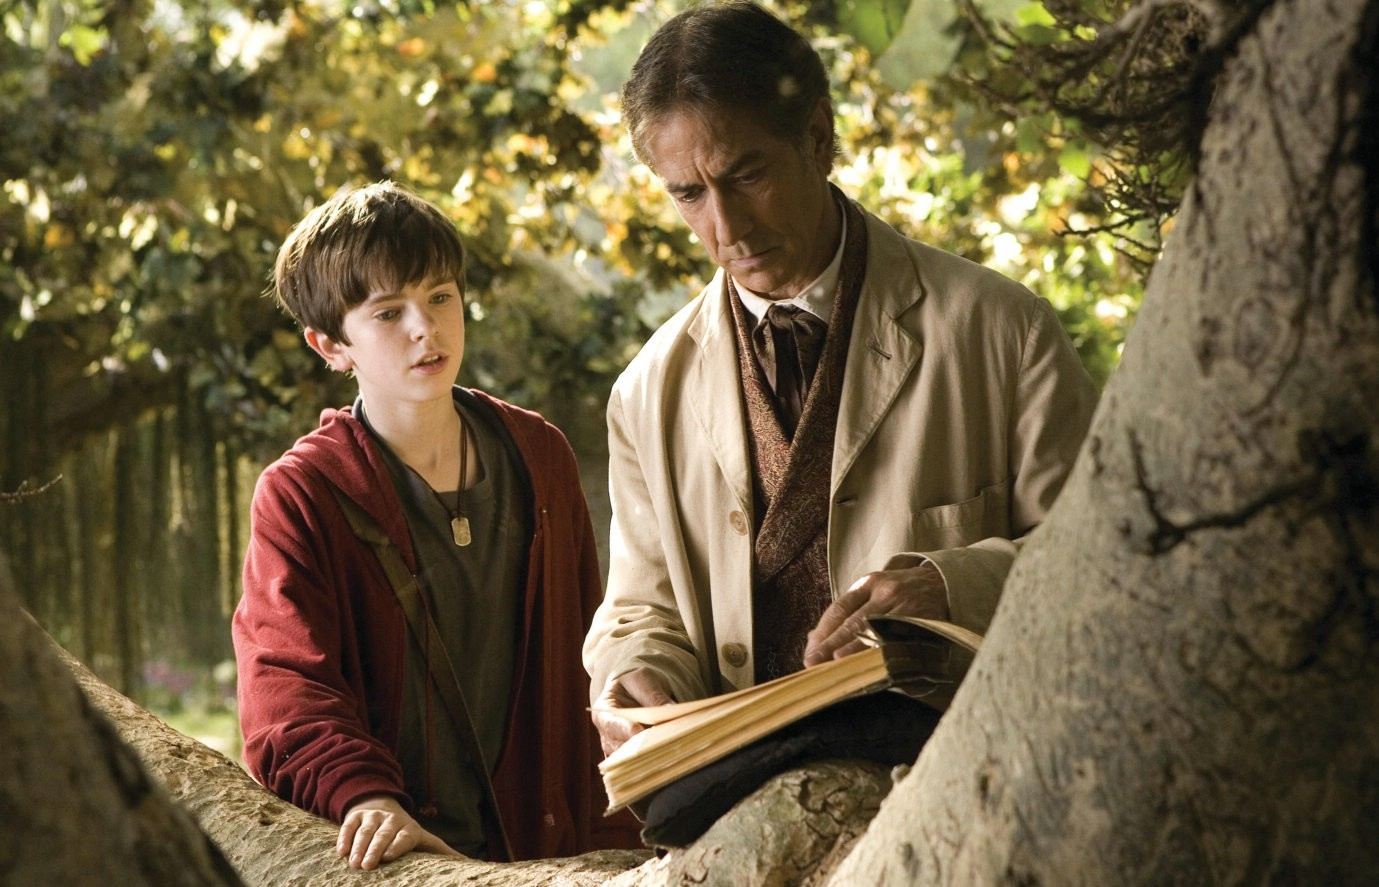 Freddie Highmore and his uncle Arthur Spiderwick (David Strathairn) in The Spiderwick Chronicles (2008)